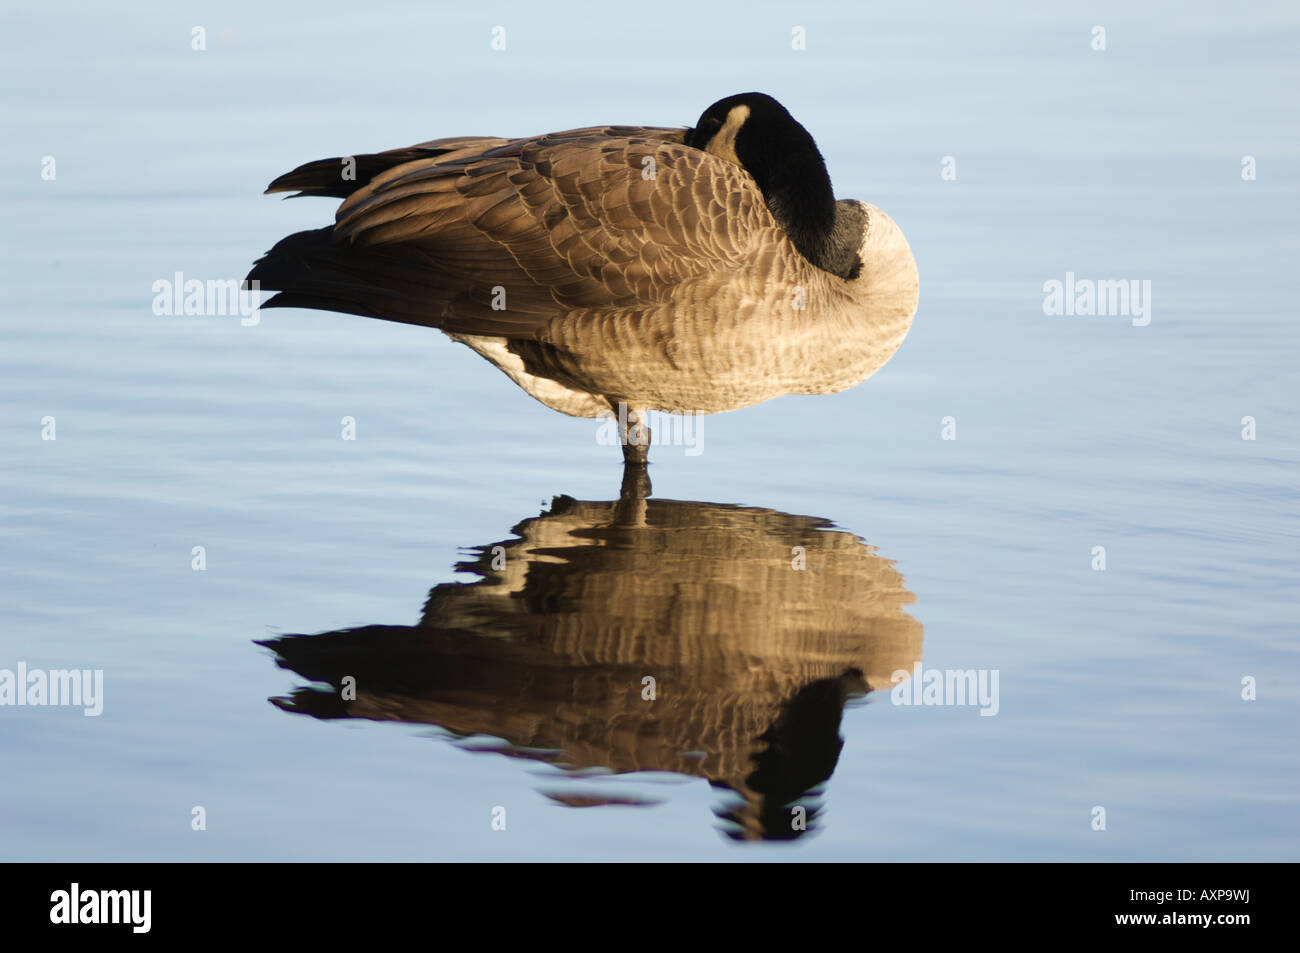 one Canada goose sleeping standing on one leg in the middle of water